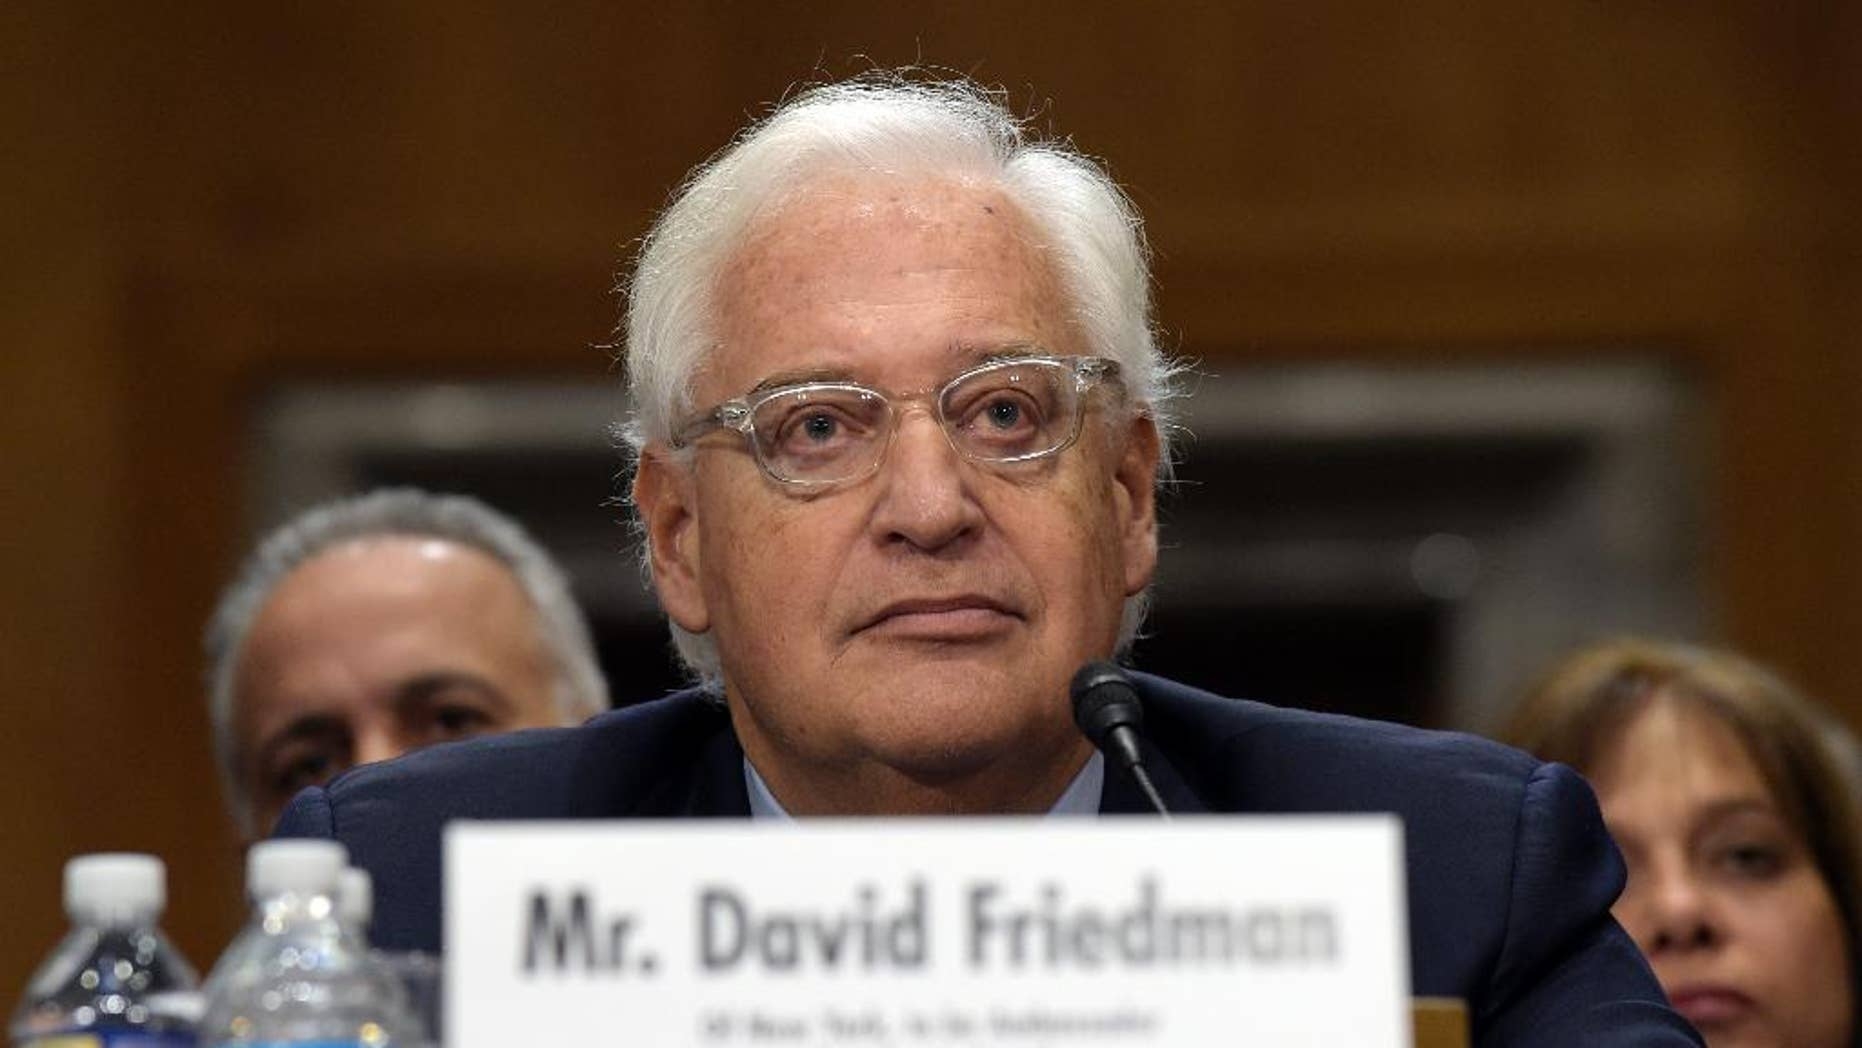 David Friedman, nominated to be U.S. Ambassador to Israel, testifies on Capitol Hill in Washington, Thursday, Feb. 16, 2017, at his confirmation hearing before the Senate Foreign Relations Committee. (AP Photo/Susan Walsh)